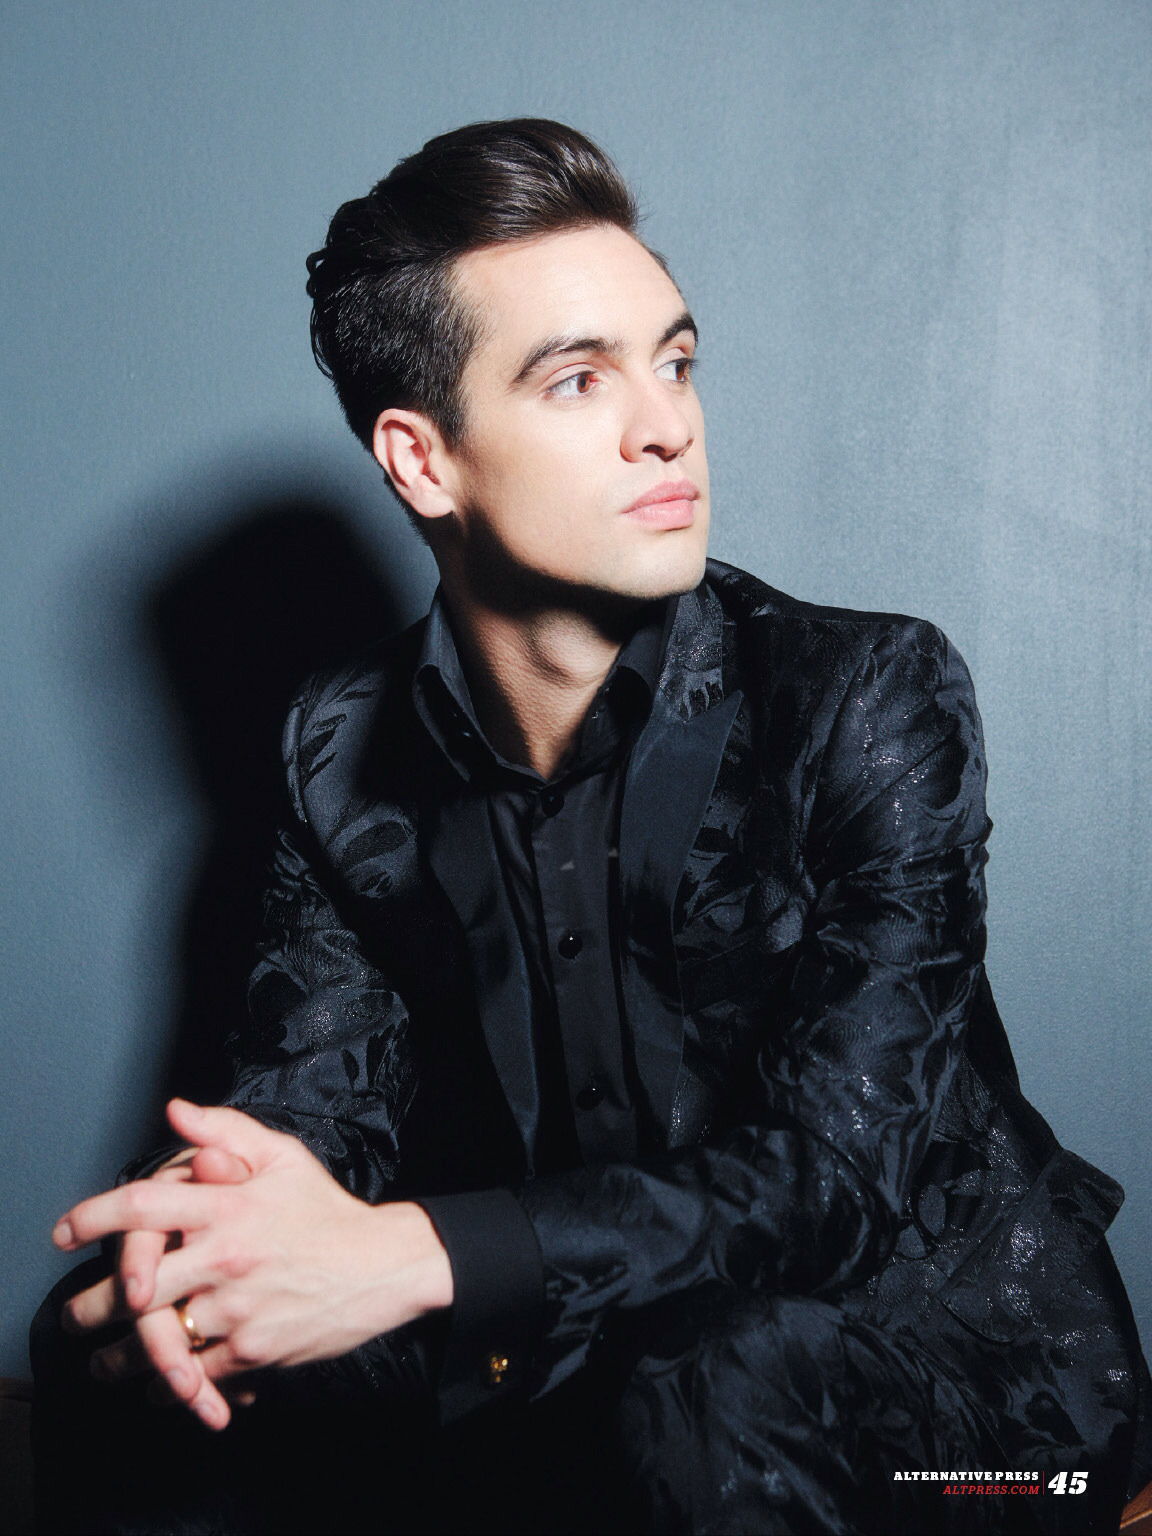 Cute Fall Out Boy Wallpapers Brendon Urie On Ap 330 Article Fall Out Boy Amp Etc